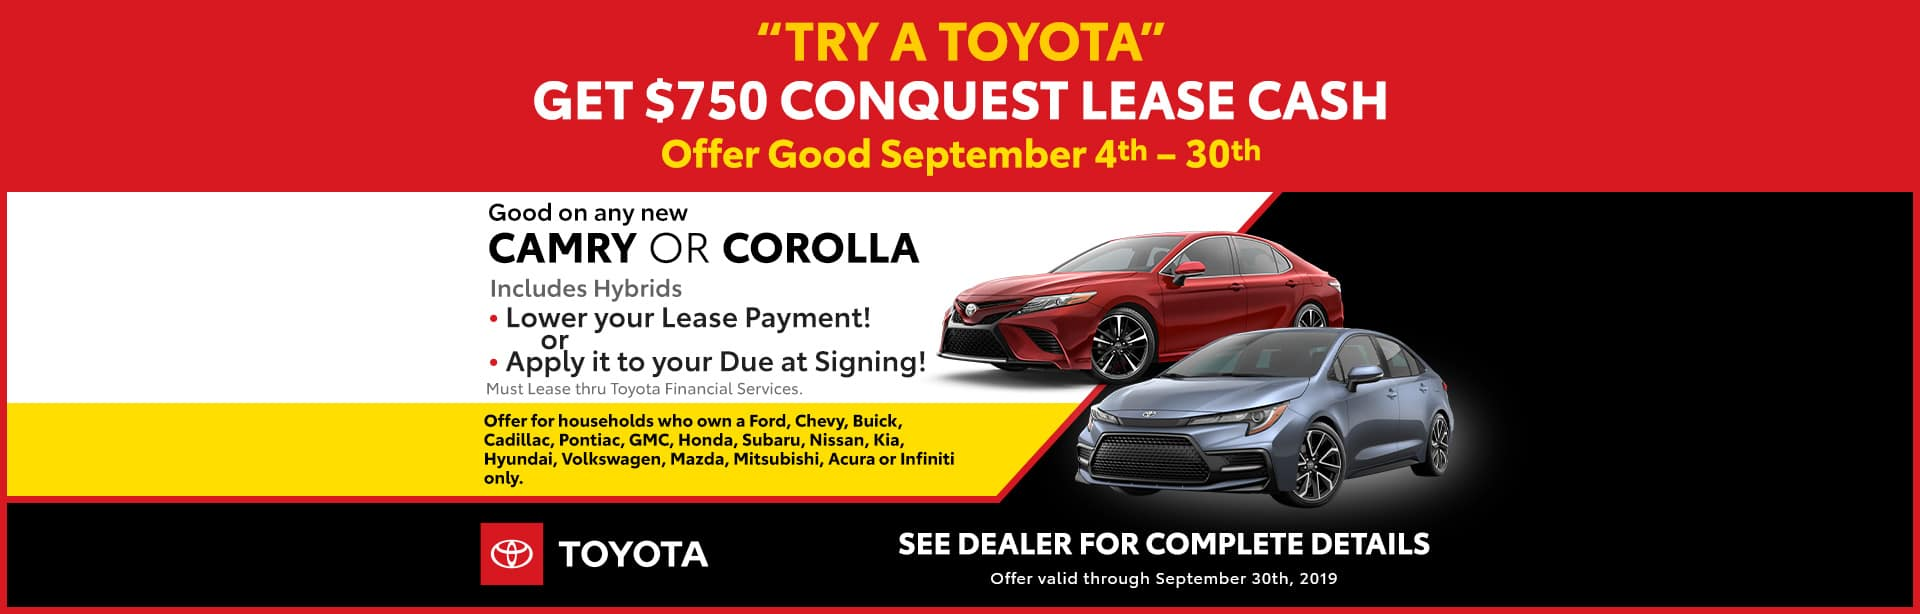 New and Used Toyota Dealer | Joseph Toyota | Serving